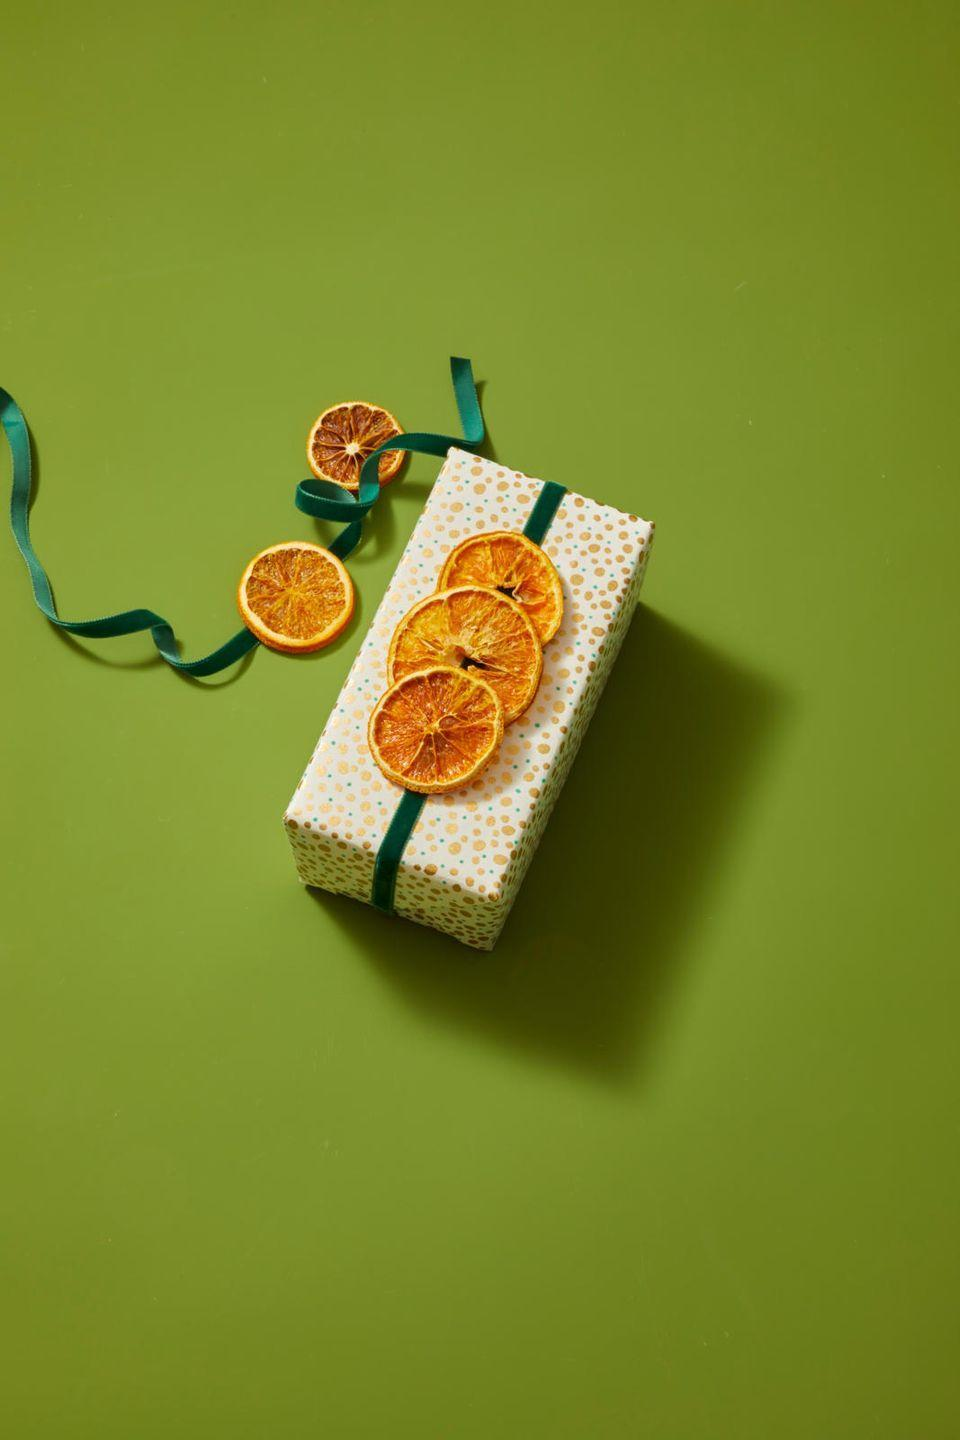 <p>Or, if you want an alternative to the woodland scene, string some dehydrated oranges onto a ribbon for a gift topper that looks like it came straight out of <em>Little Women</em>. Use the ribbon to hang the slices on a tree or garland afterward.</p>